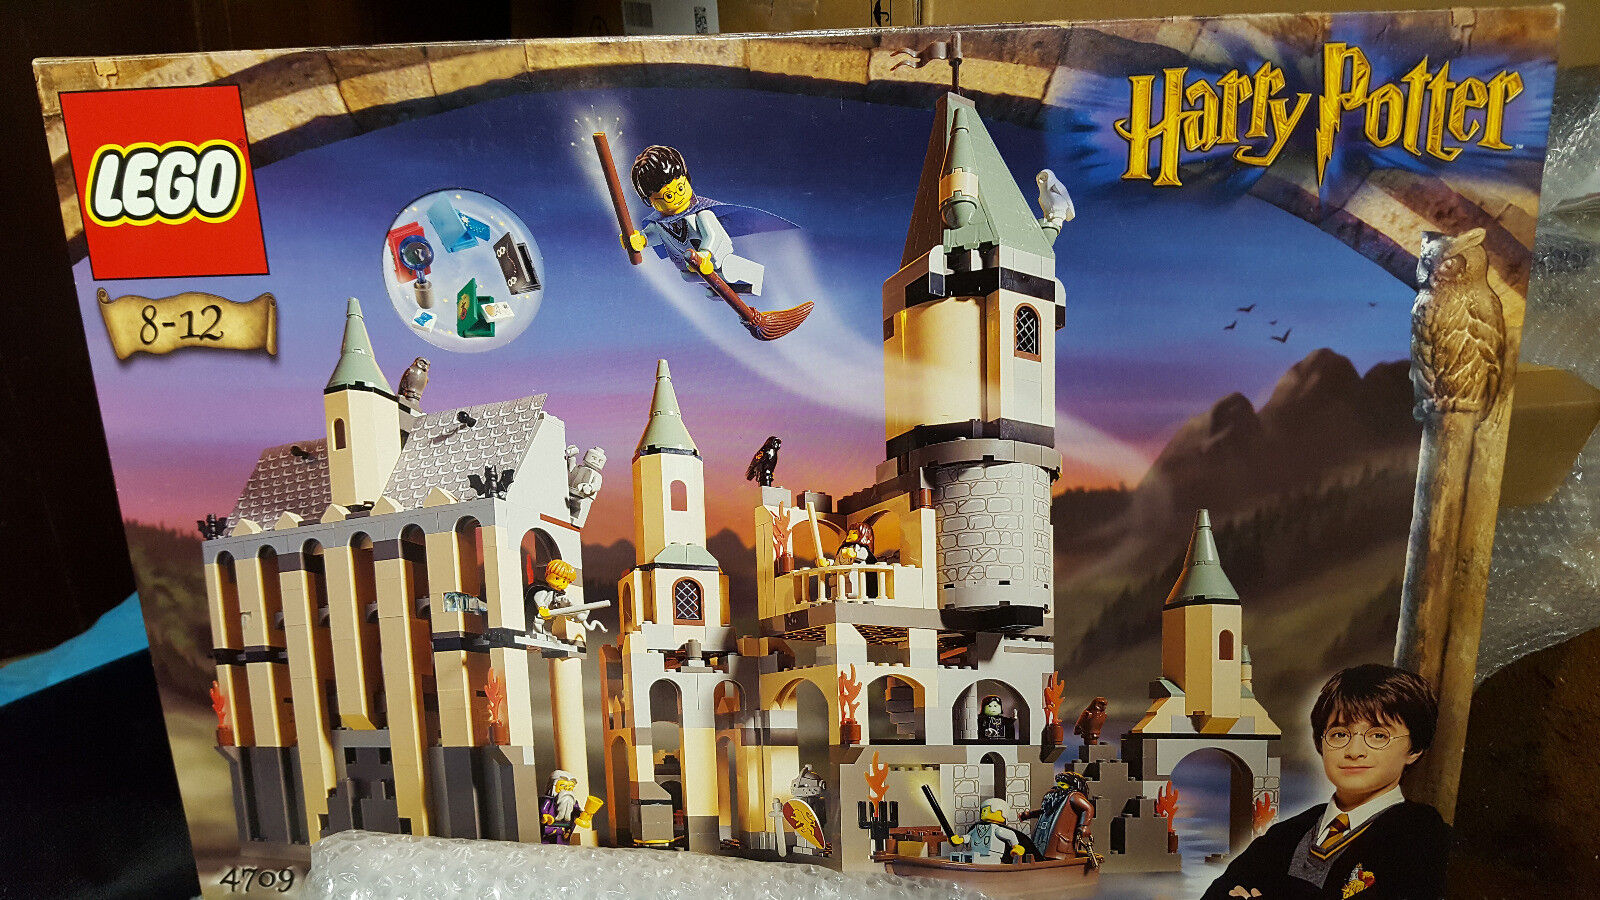 LEGO HARRY POTTER 4709 scellé new RARE